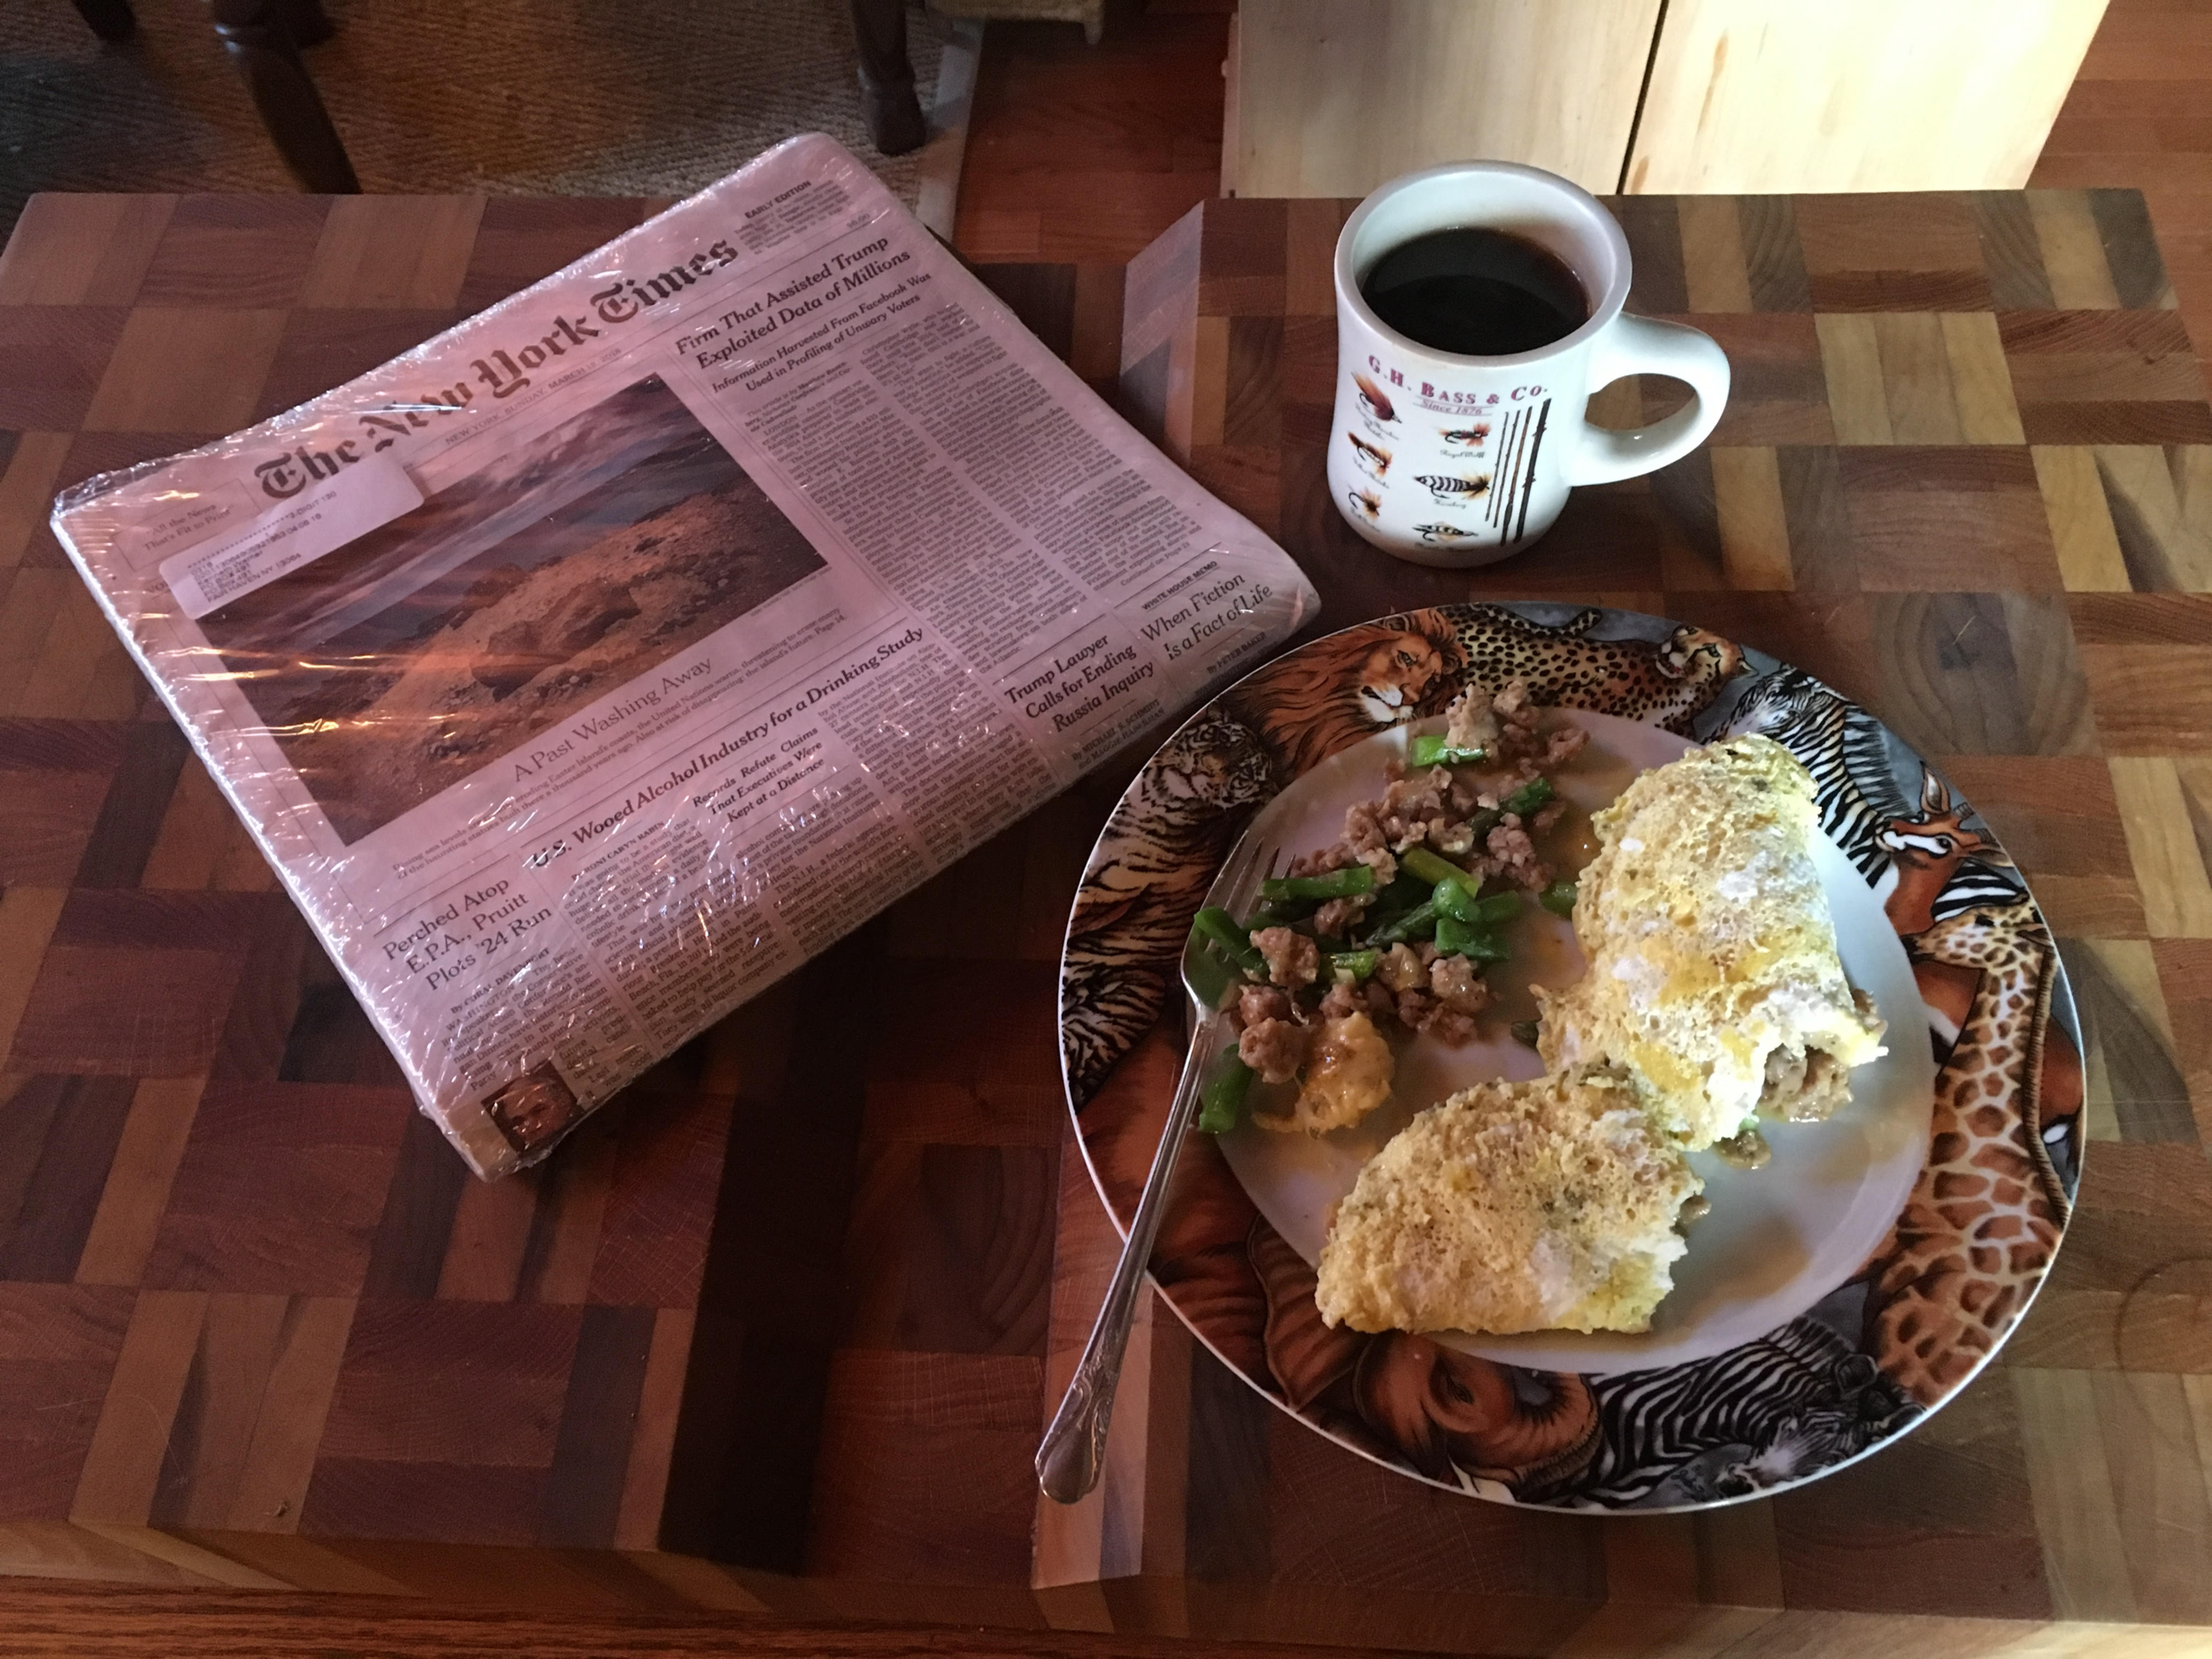 Sunday morning coffee and breakfast in exile with the New York Times.